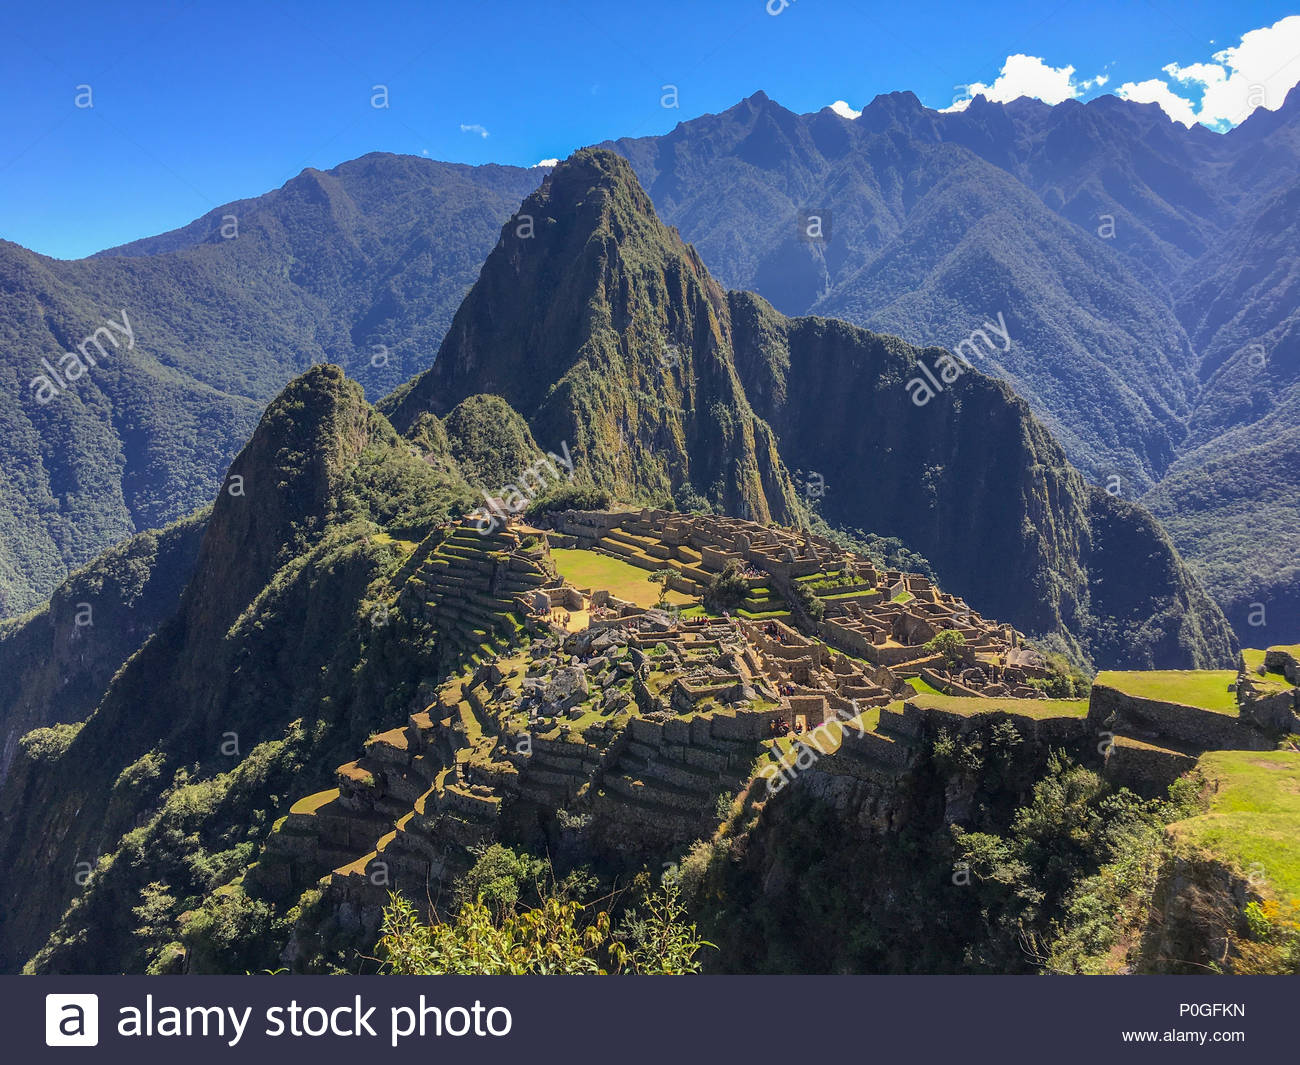 Machu Picchu the estate for the Inca emperor Pachacuti - Stock Image